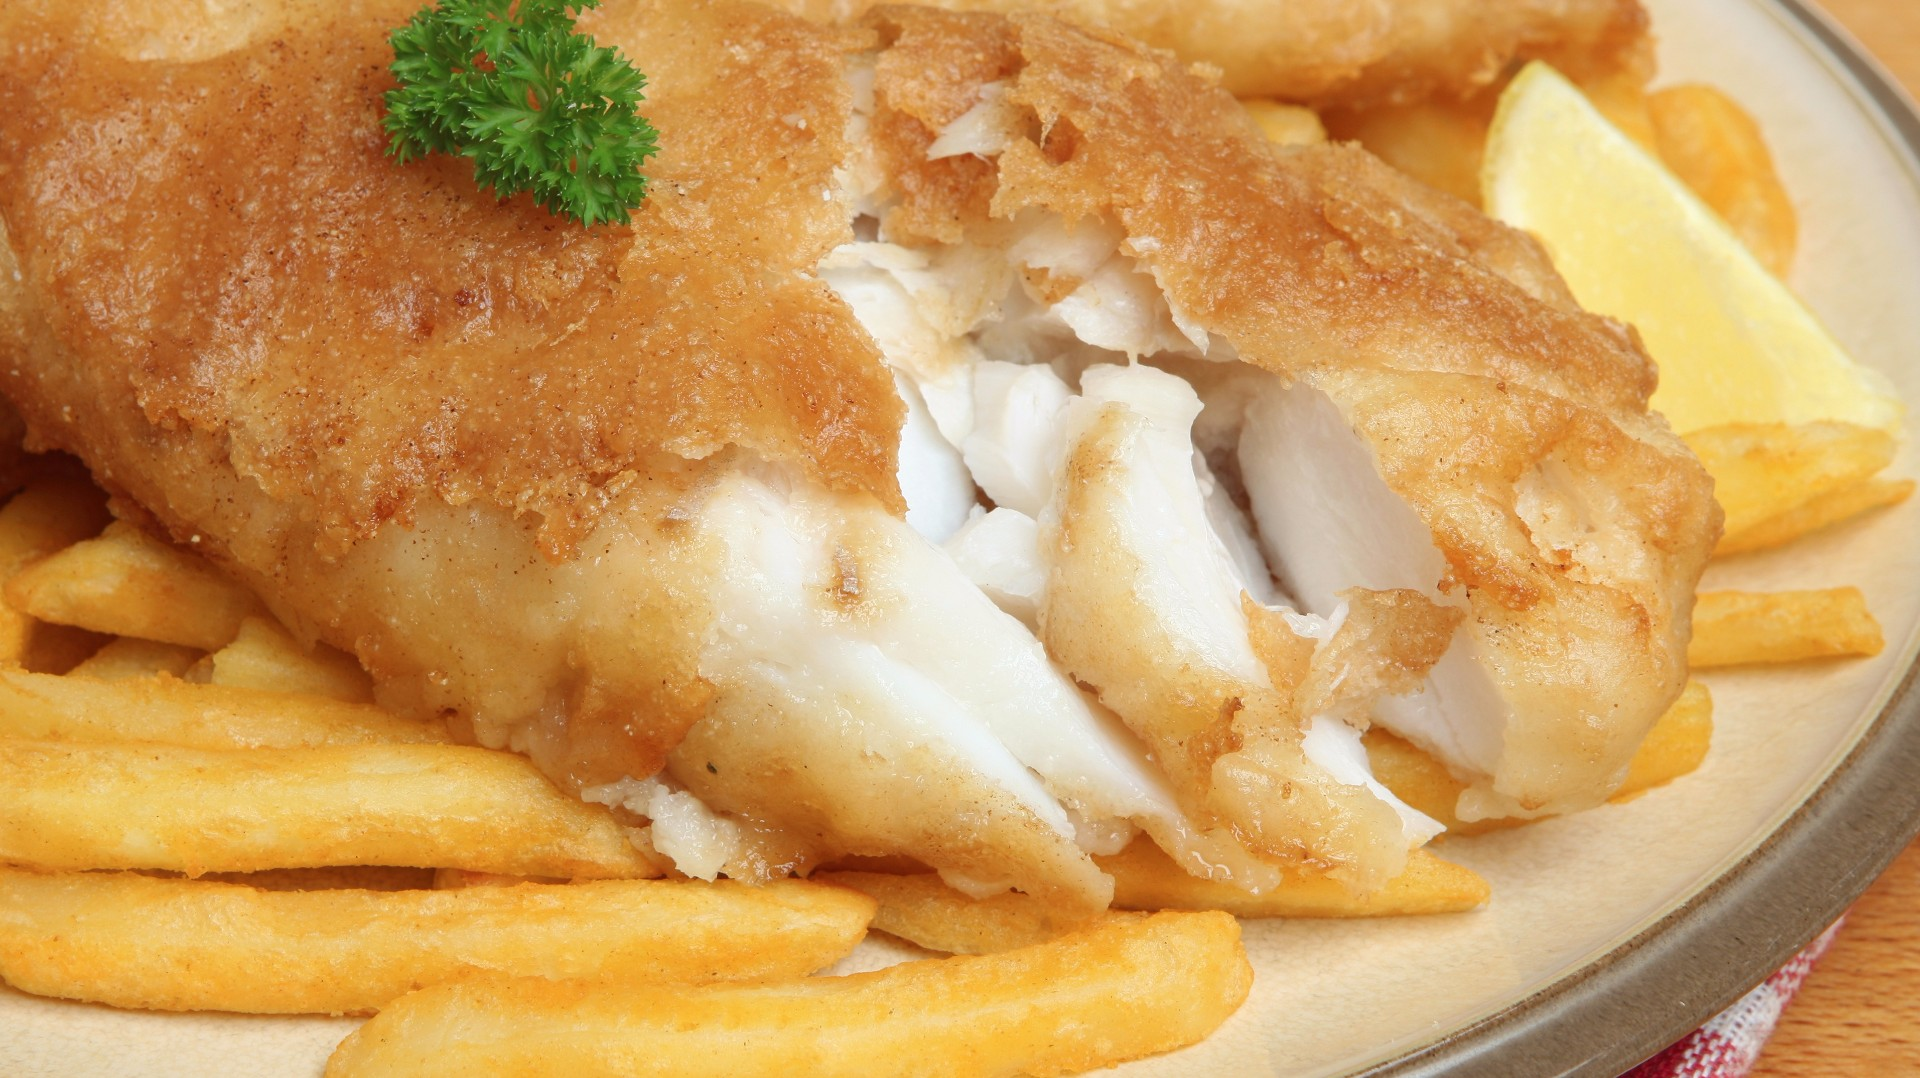 2017 lenten fish fry dinners in west michigan for Local fish fry